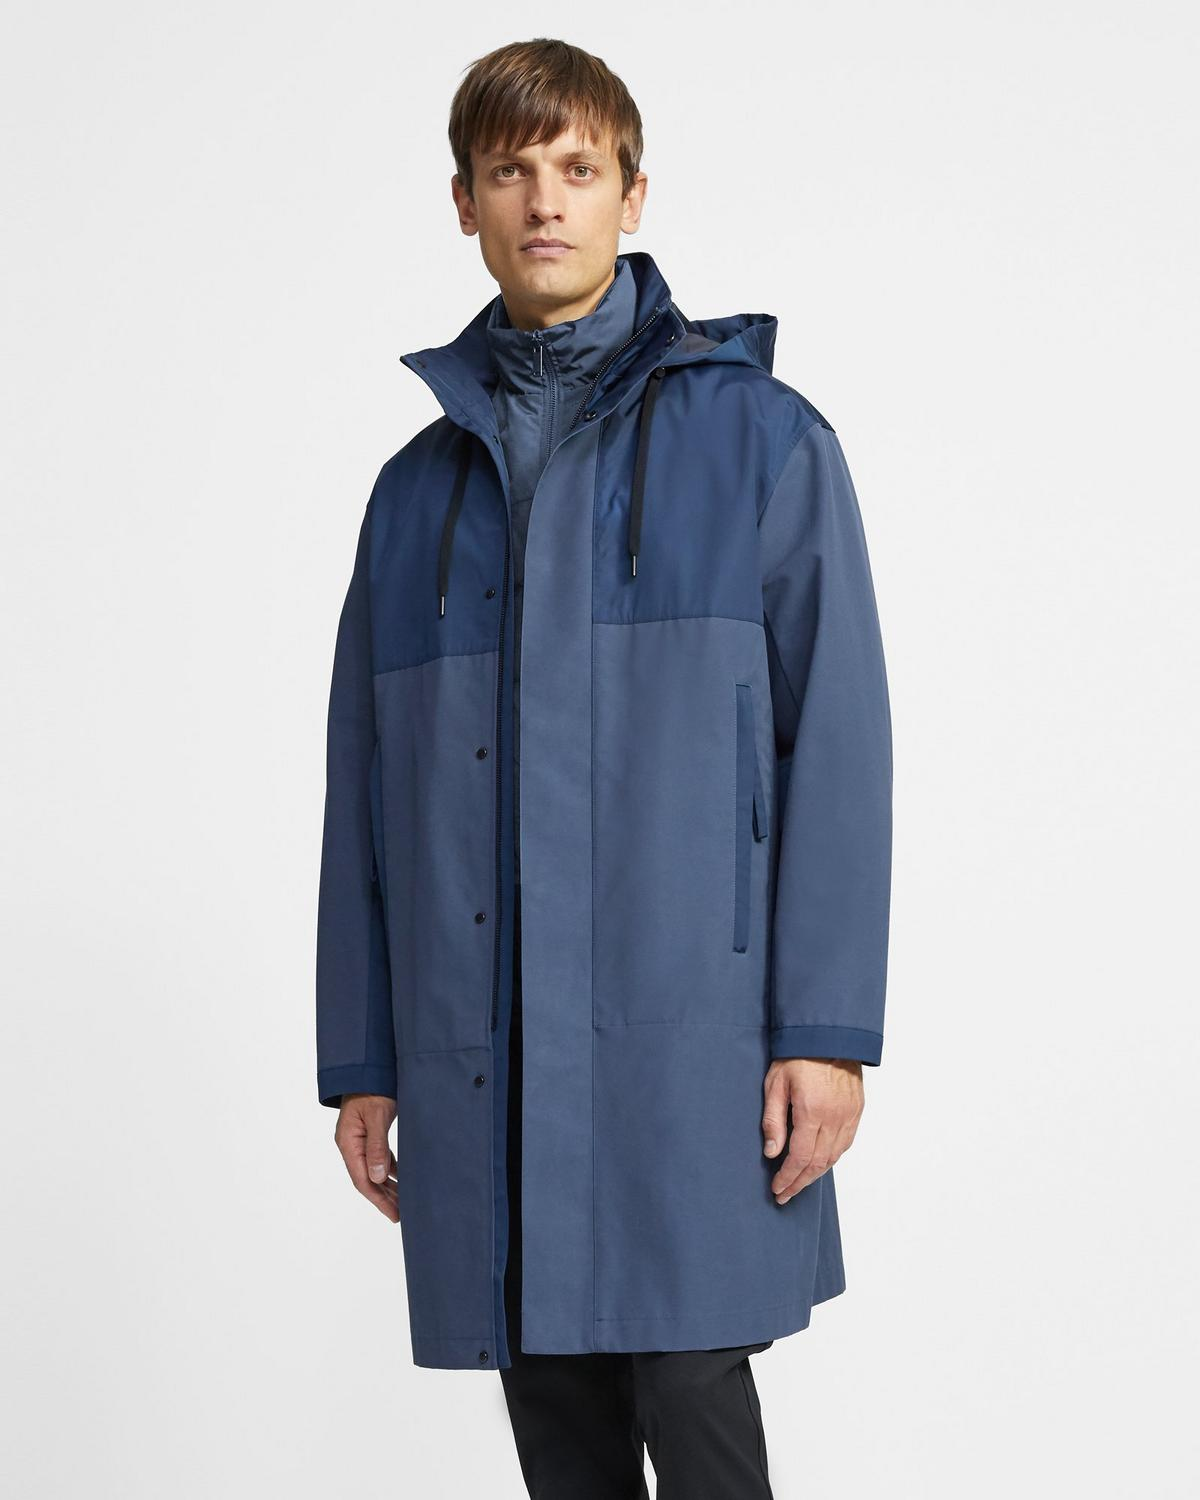 Philip 3-in-1 Parka in Cotton Blend